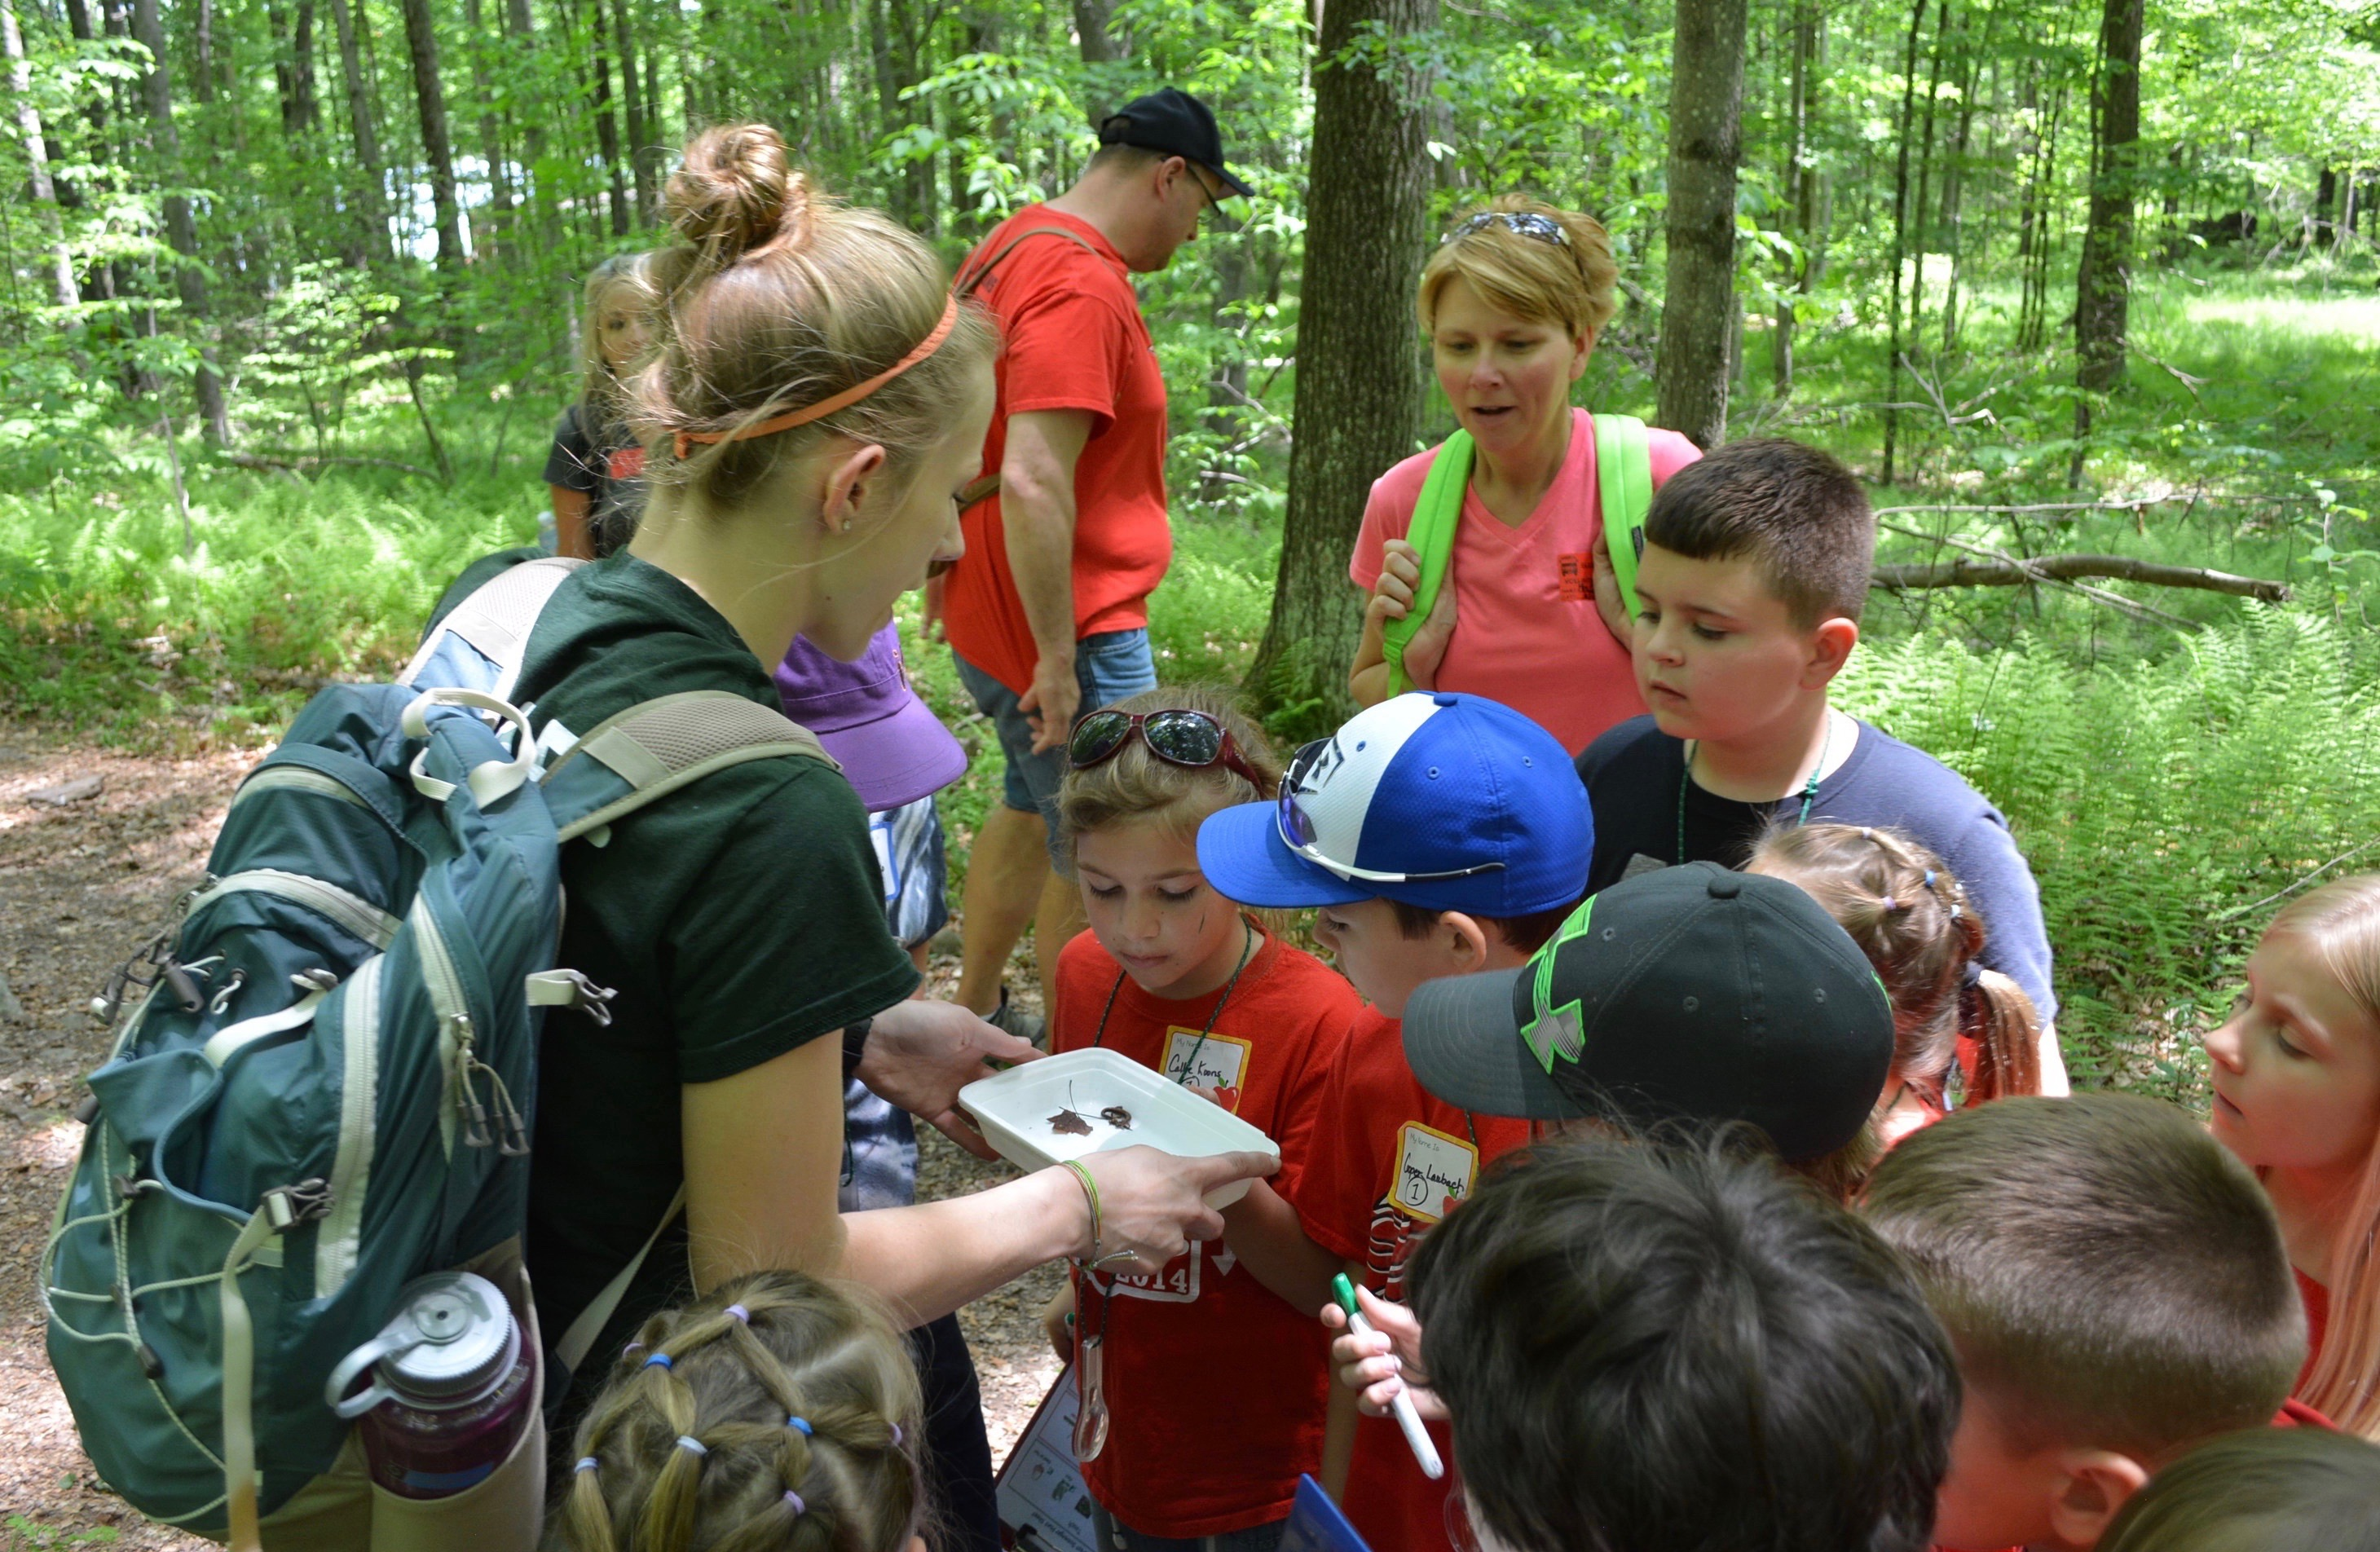 Come Be A Part Of A Team Of Professionals That Are Organized, Passionate  For Camp, Nature And Working With Children. Gain Valuable Hands On  Experience ...